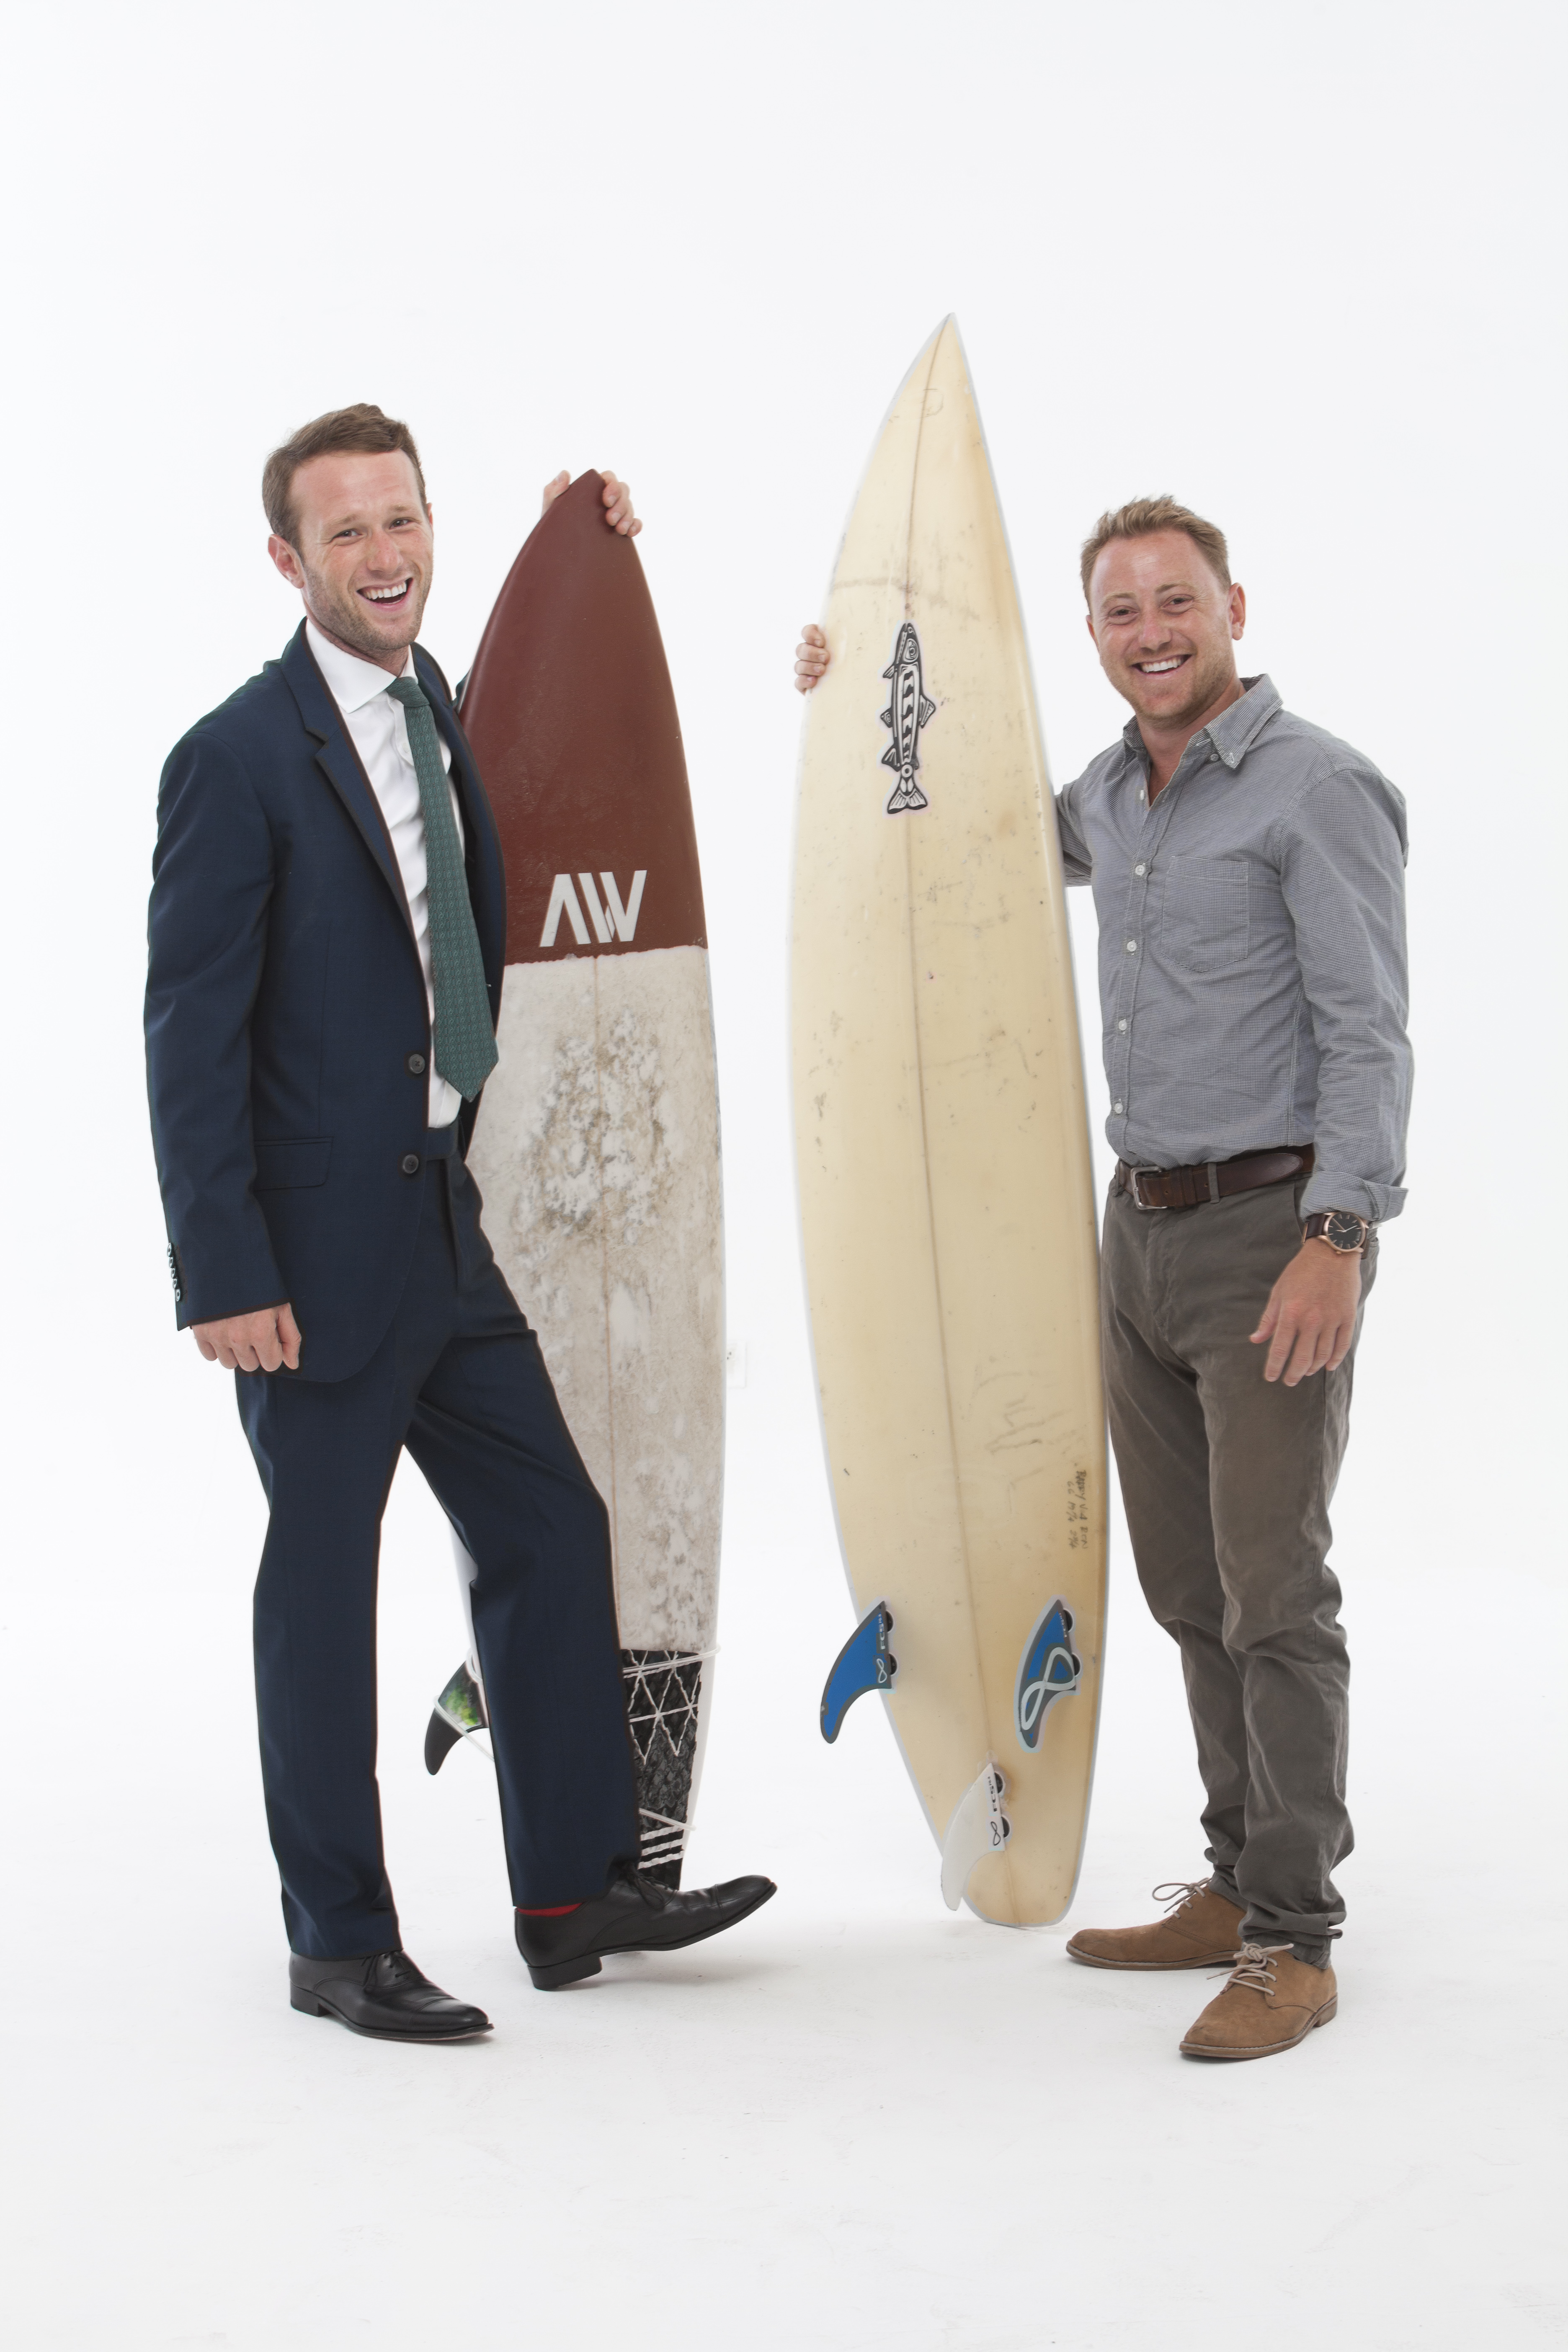 Ed Hutchinson and David Johnstone posing for a photo with their surfboards